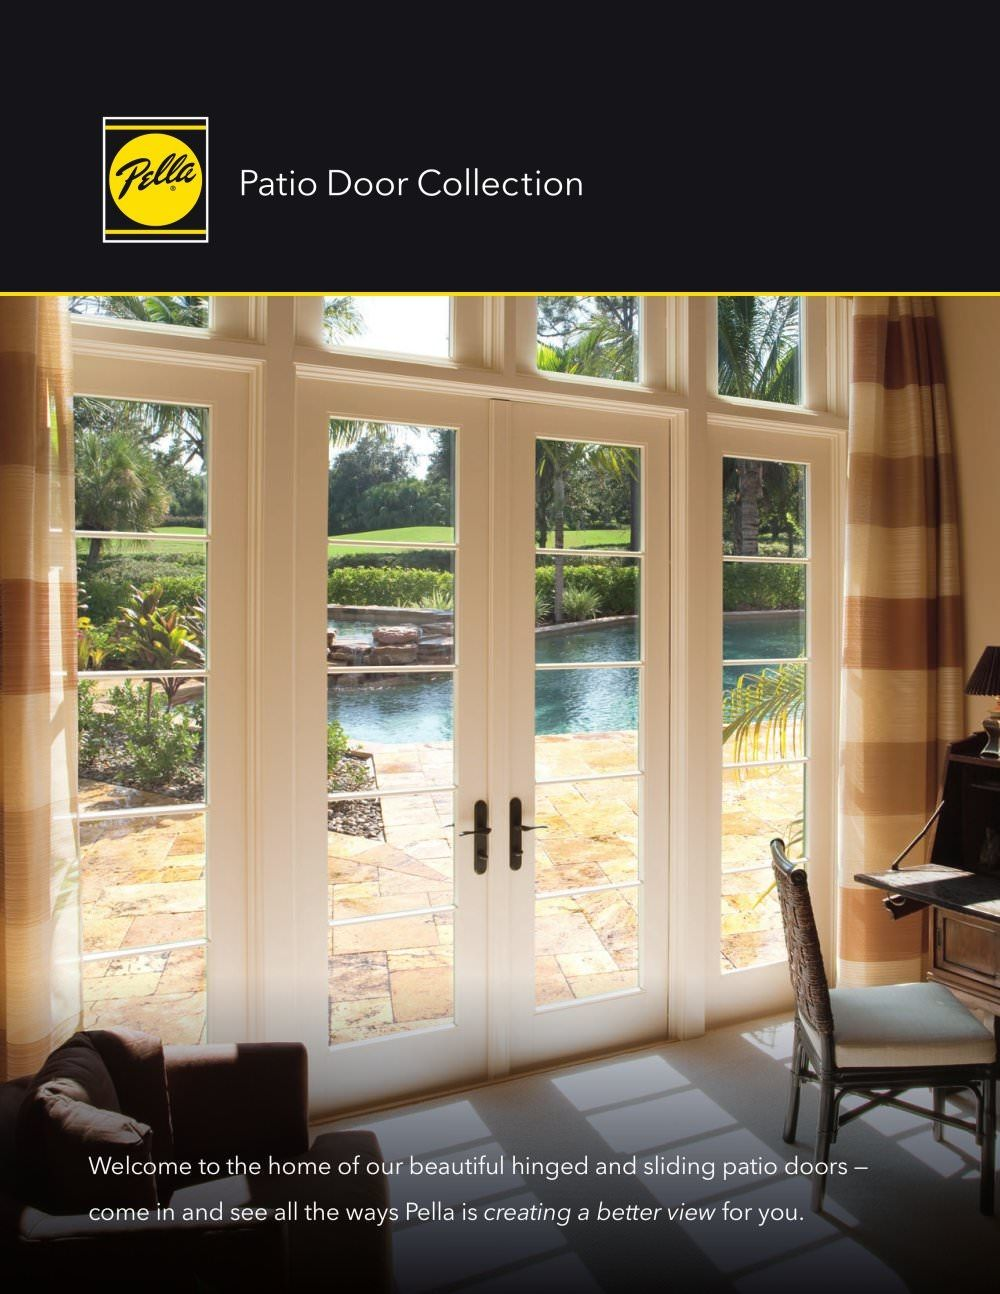 Pella Architectural Series Sliding Glass Doors The Huge Growth In Demand For Folding Sliding Doors On The Hinged Patio Doors Patio Doors Sliding Patio Doors